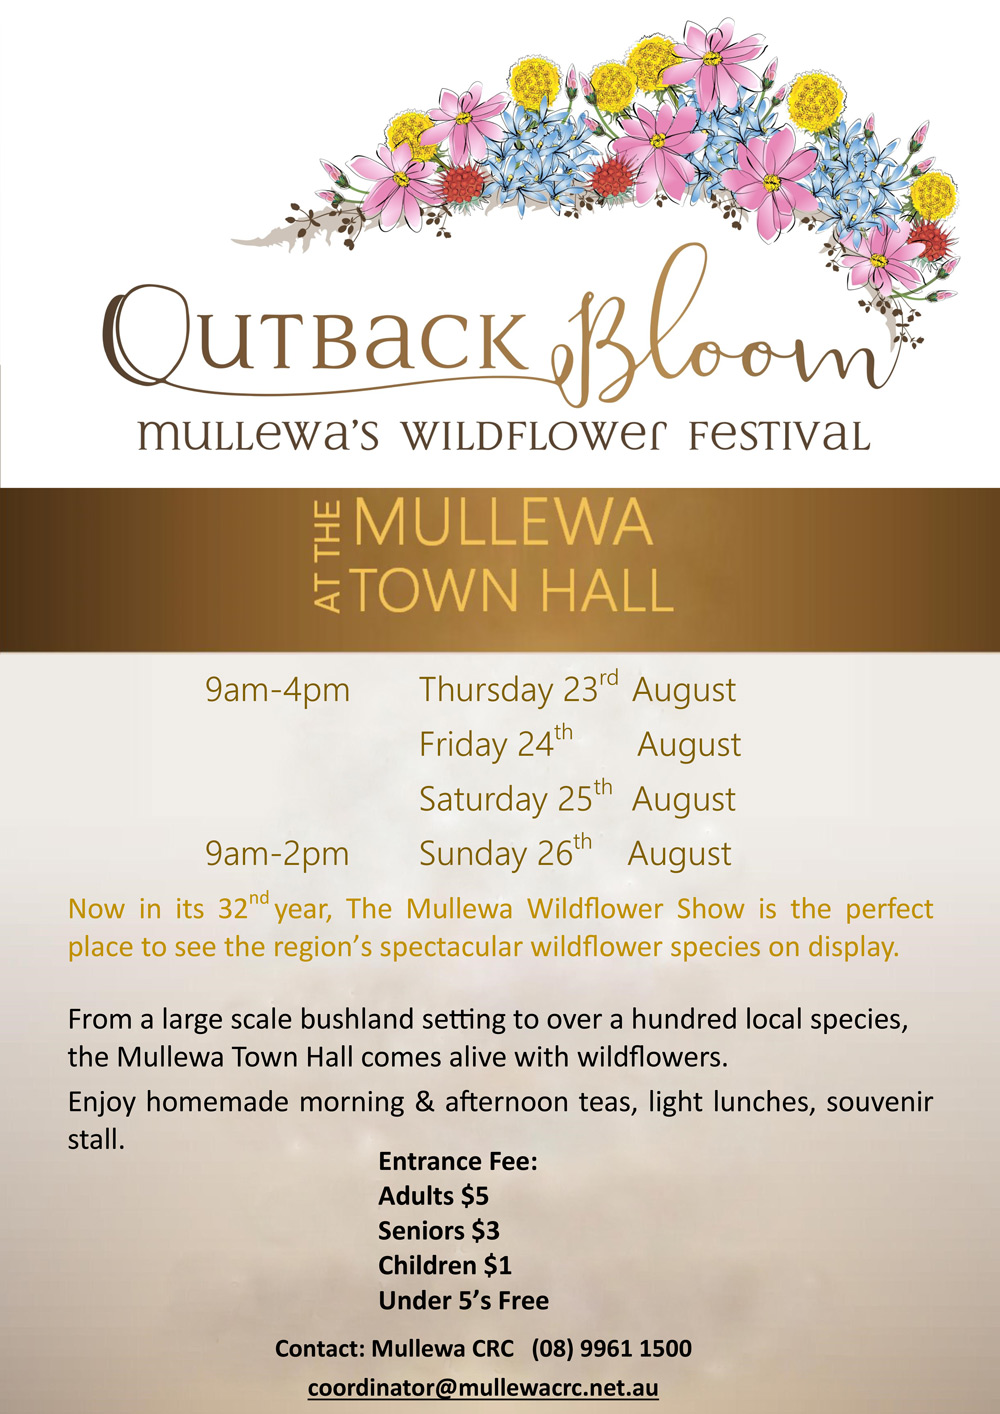 Mullewa-Wildflower-Show-Flyer.jpg